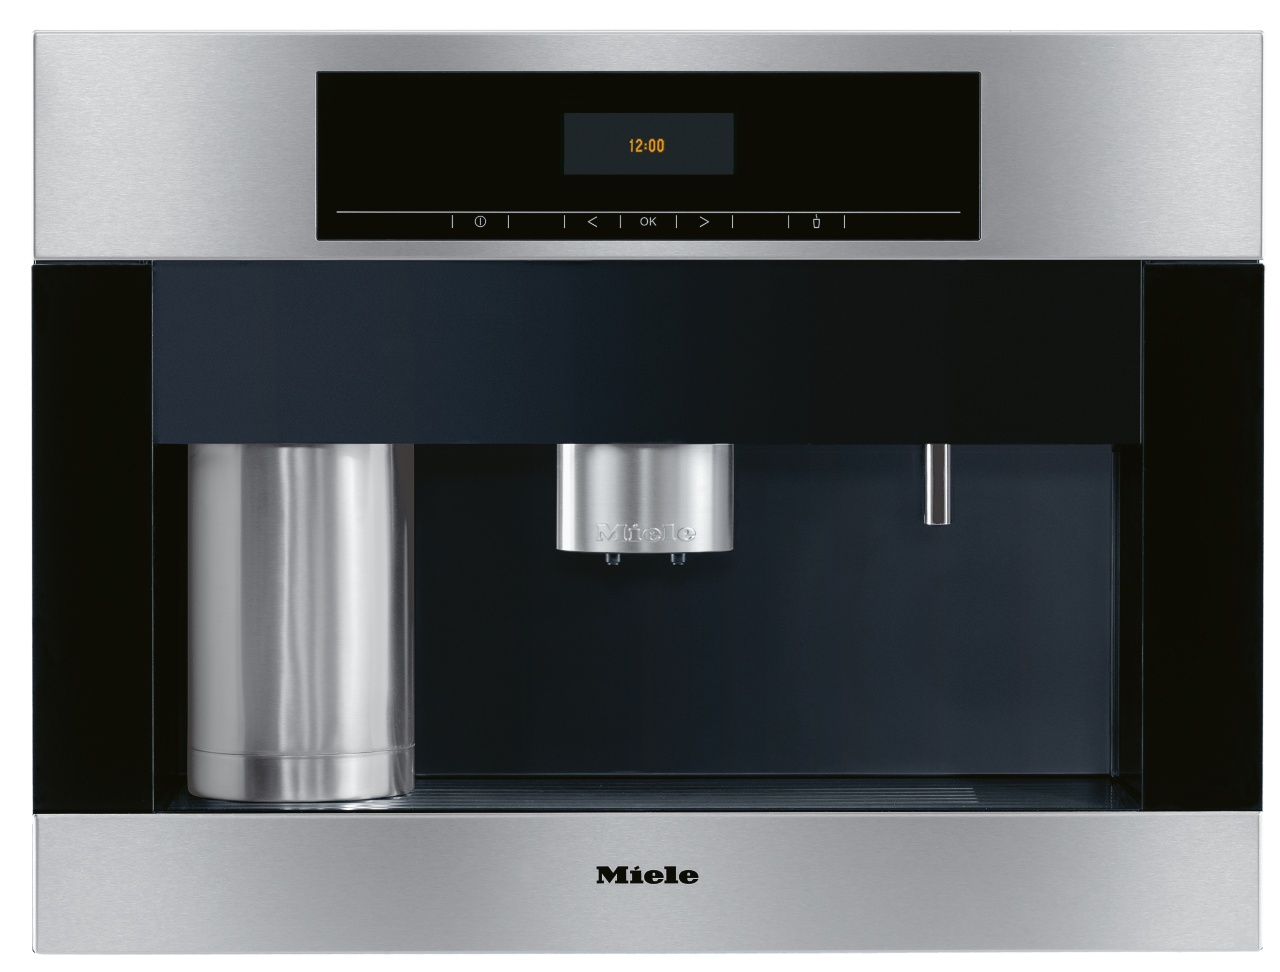 miele built in coffee maker reviews. Black Bedroom Furniture Sets. Home Design Ideas